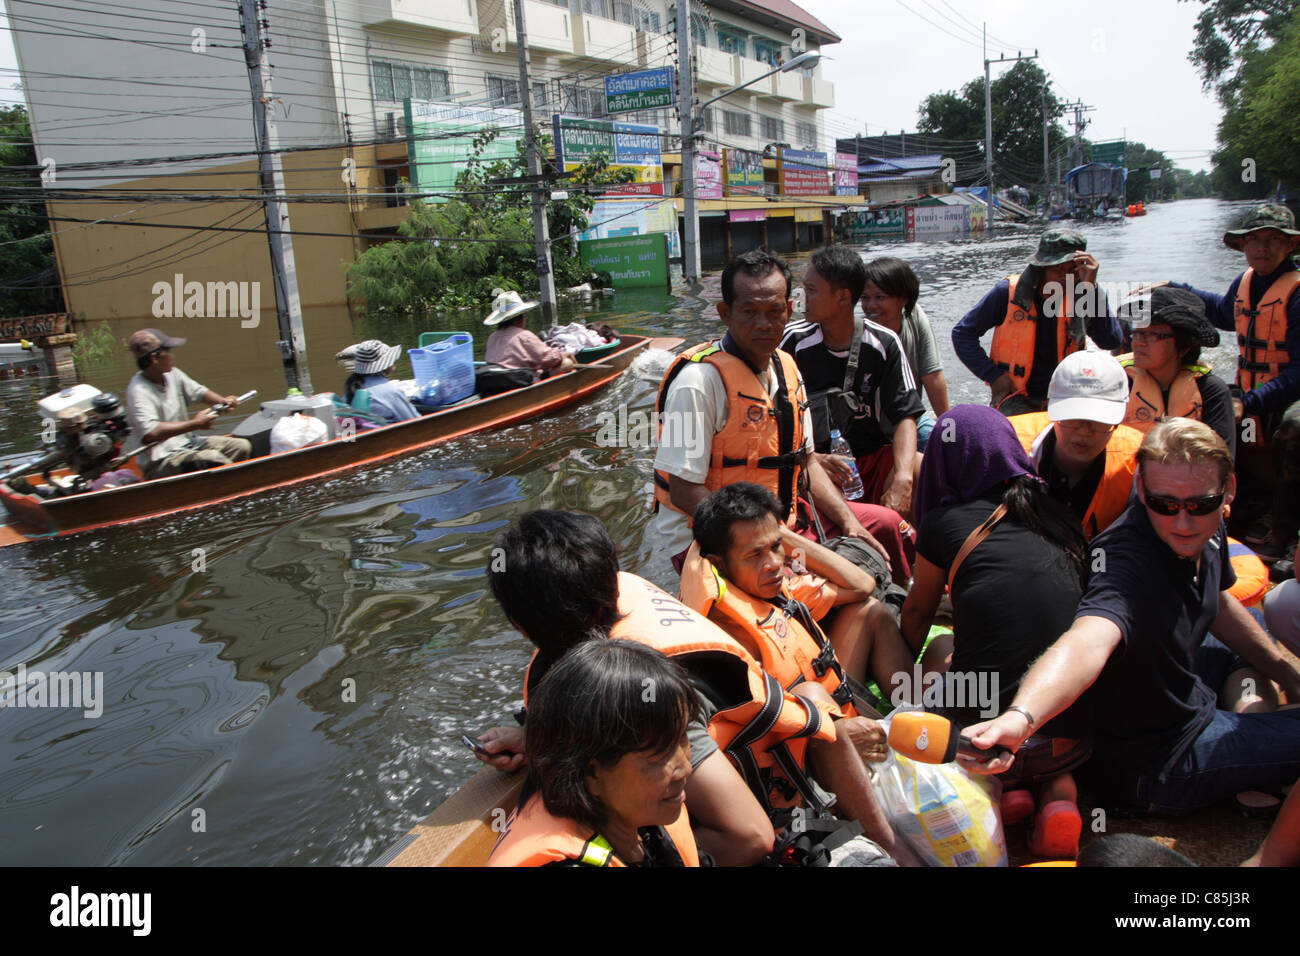 Ayutthaya residents sit in a boat as they are evacuated from their homes during floods - Stock Image